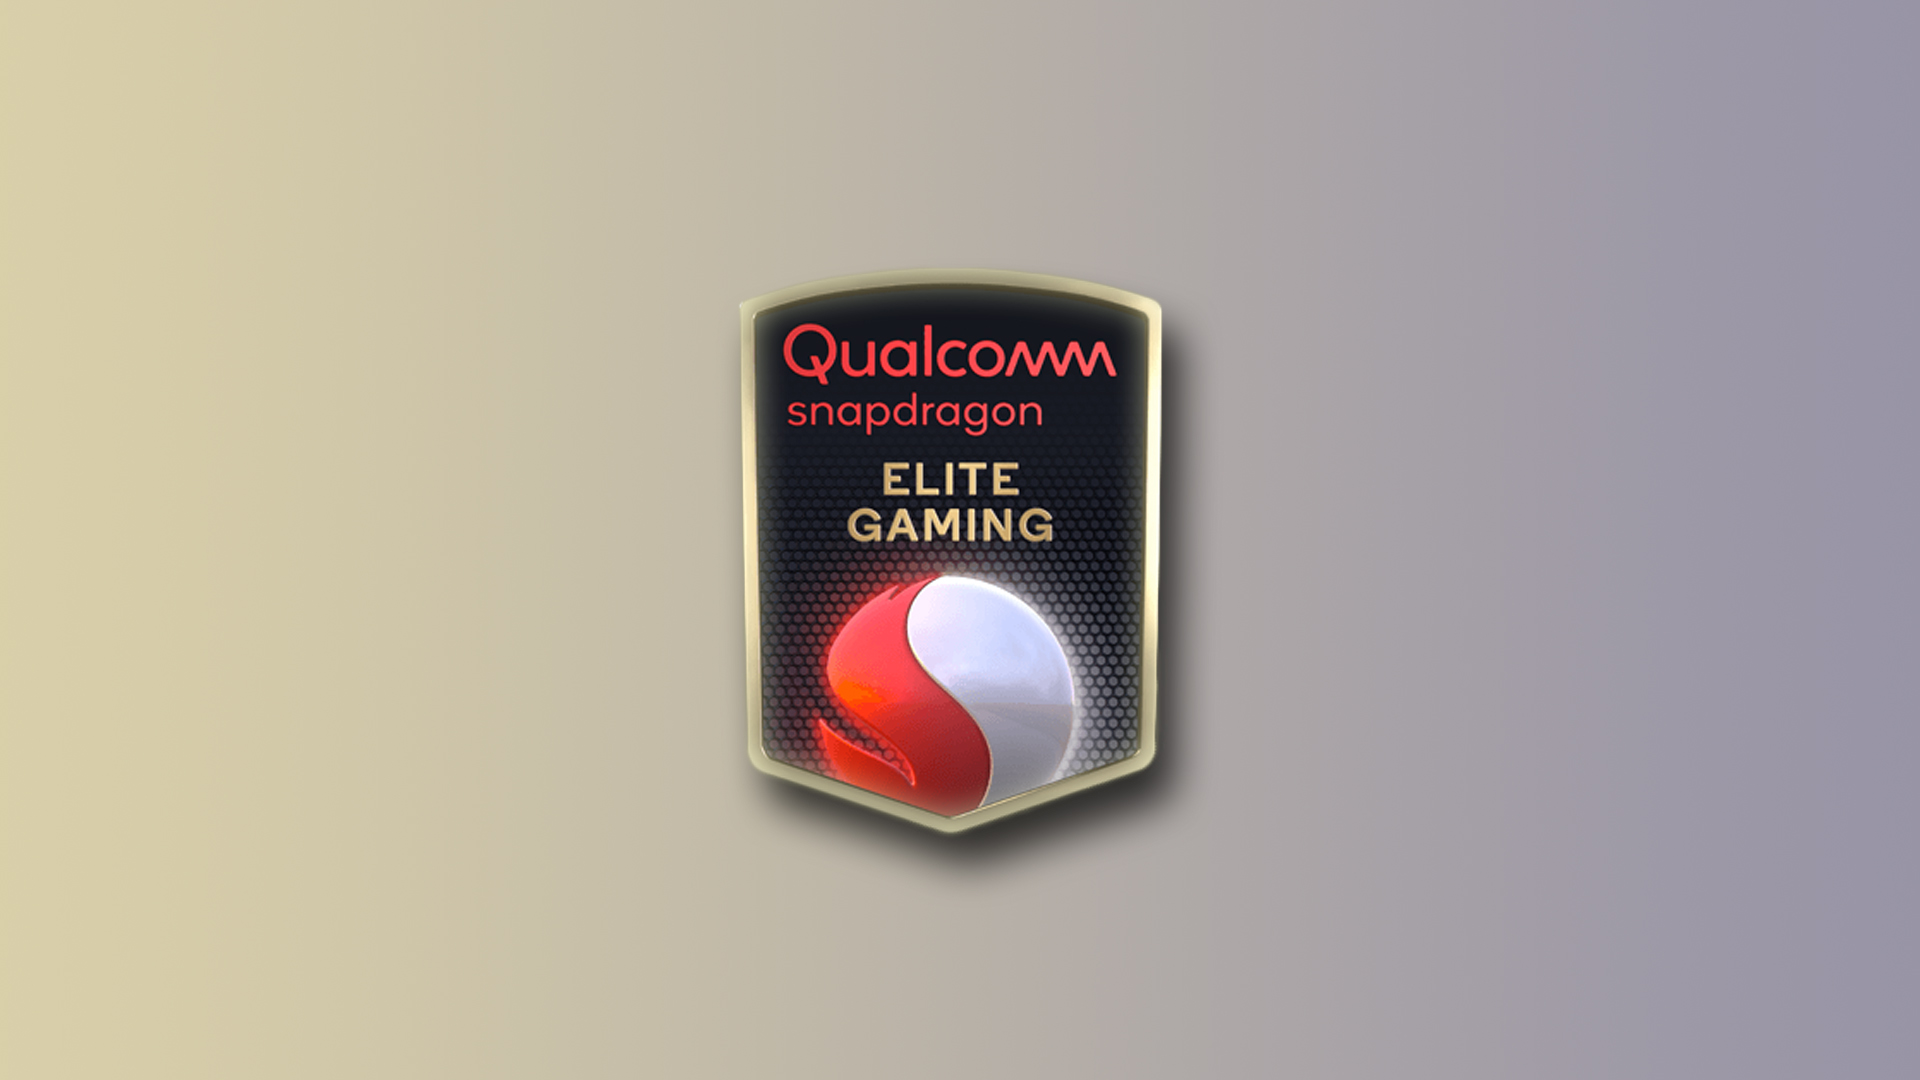 Qualcomm Details Its Latest Snapdragon Elite Gaming Feature and How It Will Benefit Devices Running the Company's Latest SoCs